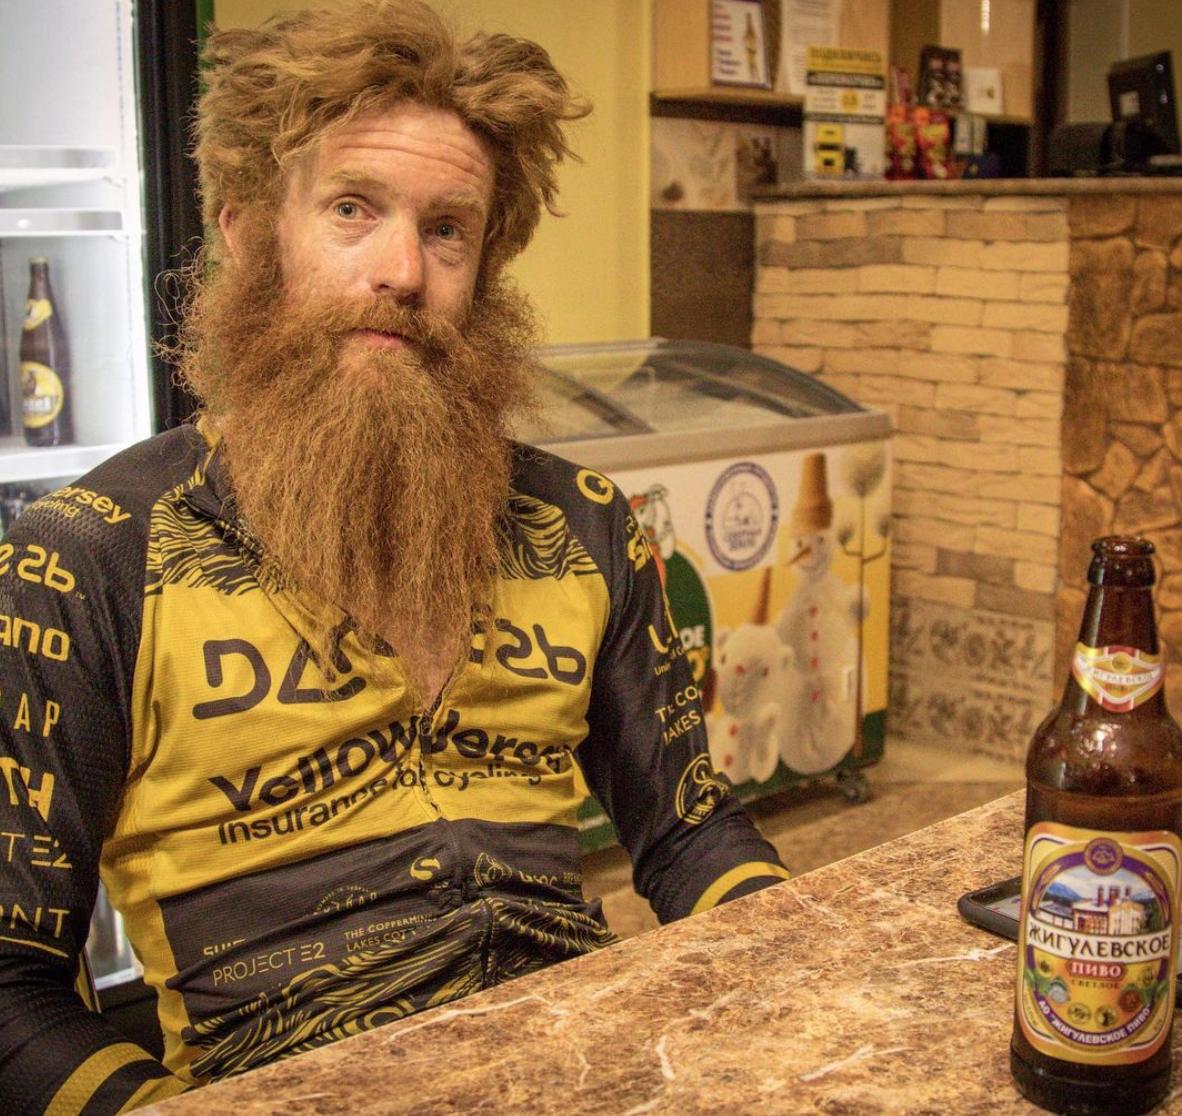 Sean Conway, having a beer